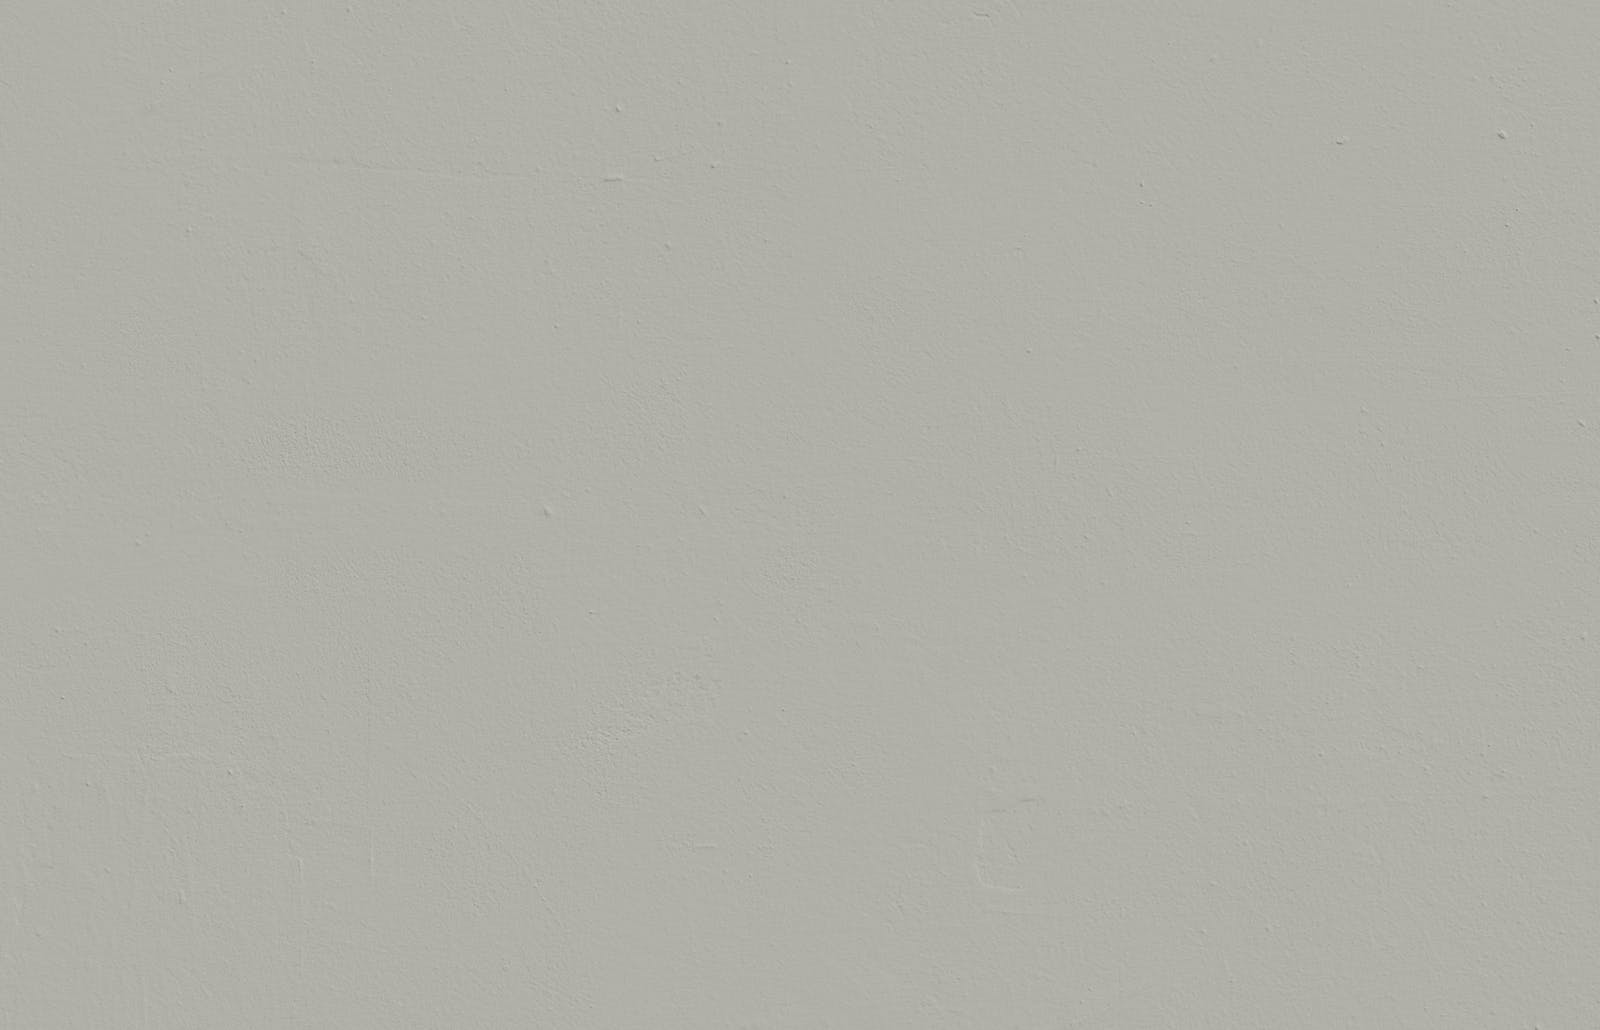 Textured wall painted in Lick Grey 04 paint